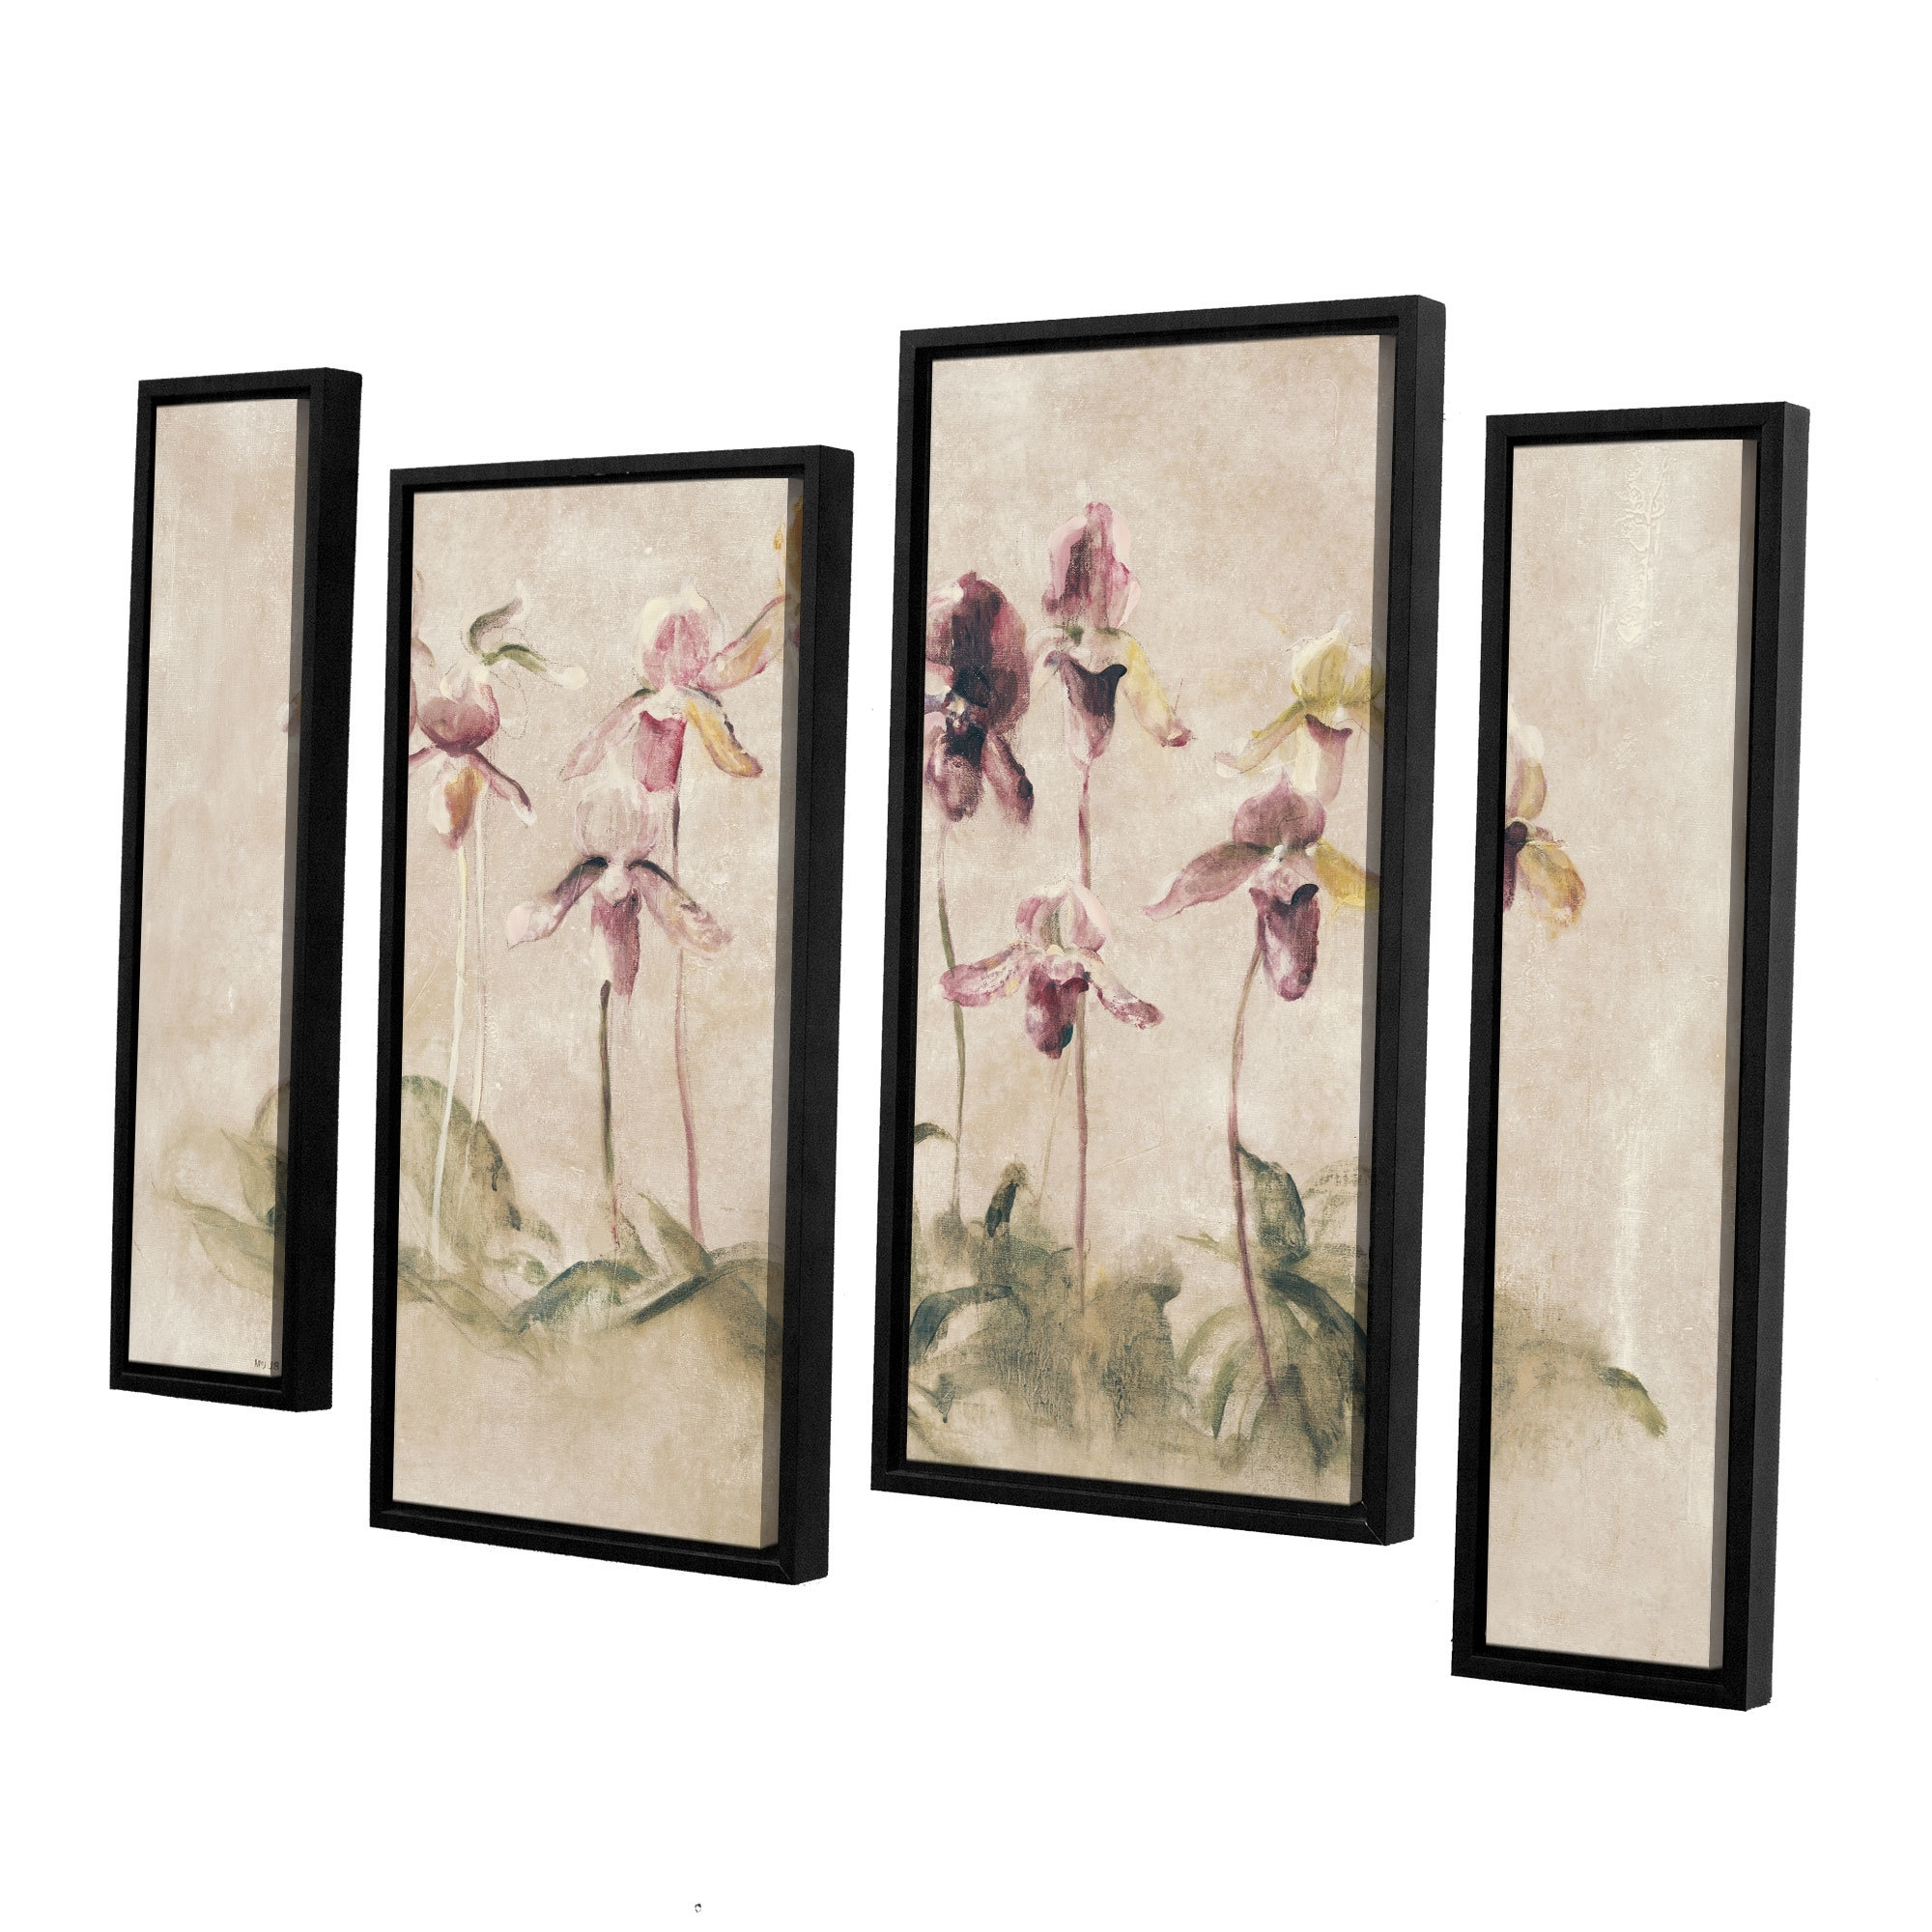 Cheri Blum Framed Art Prints Intended For Newest Artwall 'purple Dancing Orchids'cheri Blum 4 Piece Framed (View 6 of 15)